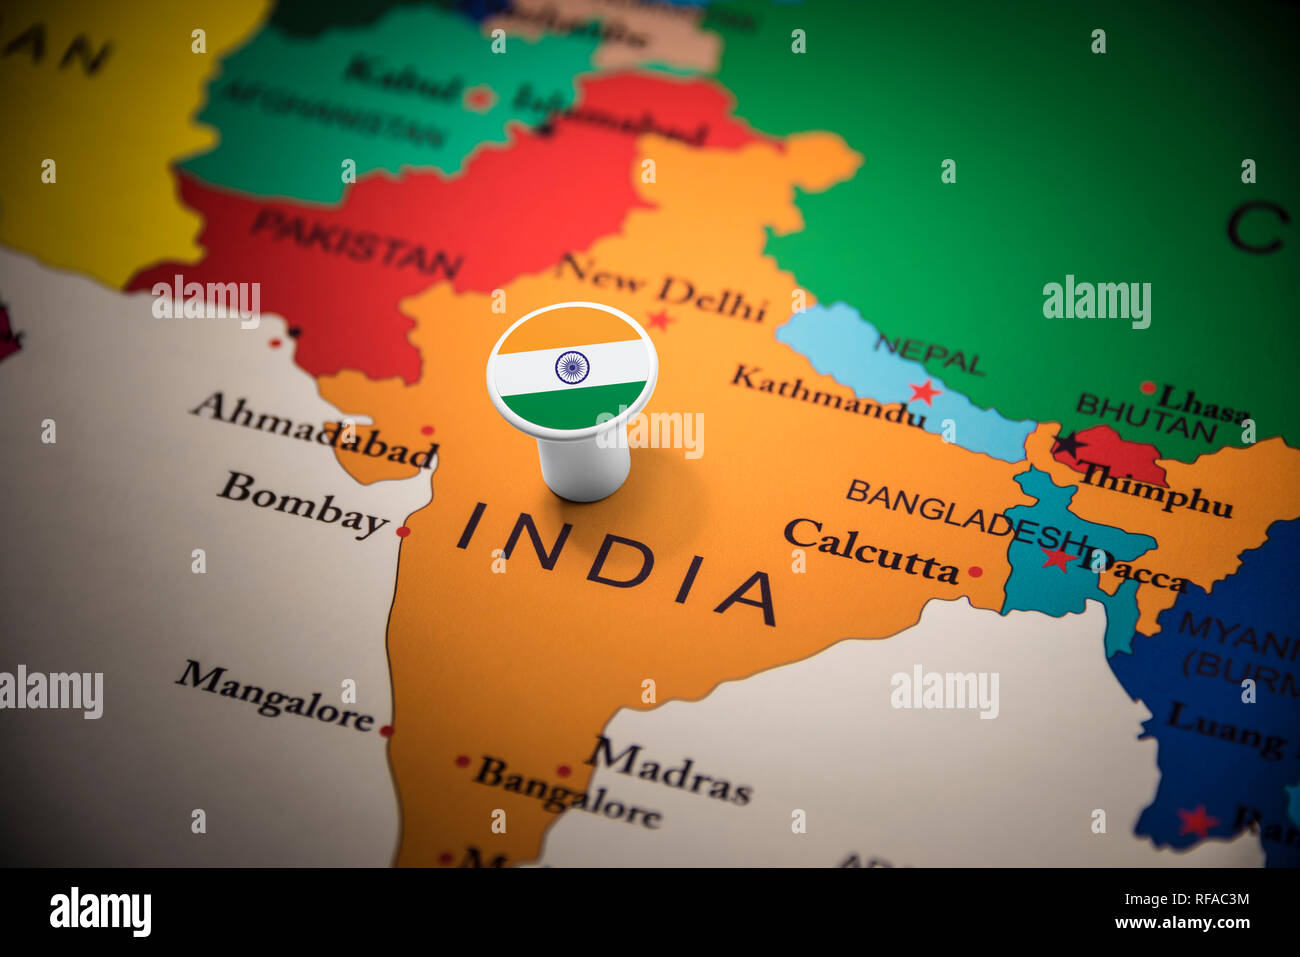 Drapeau India India Marked With A Flag On The Map Stock Photo 233183656 Alamy